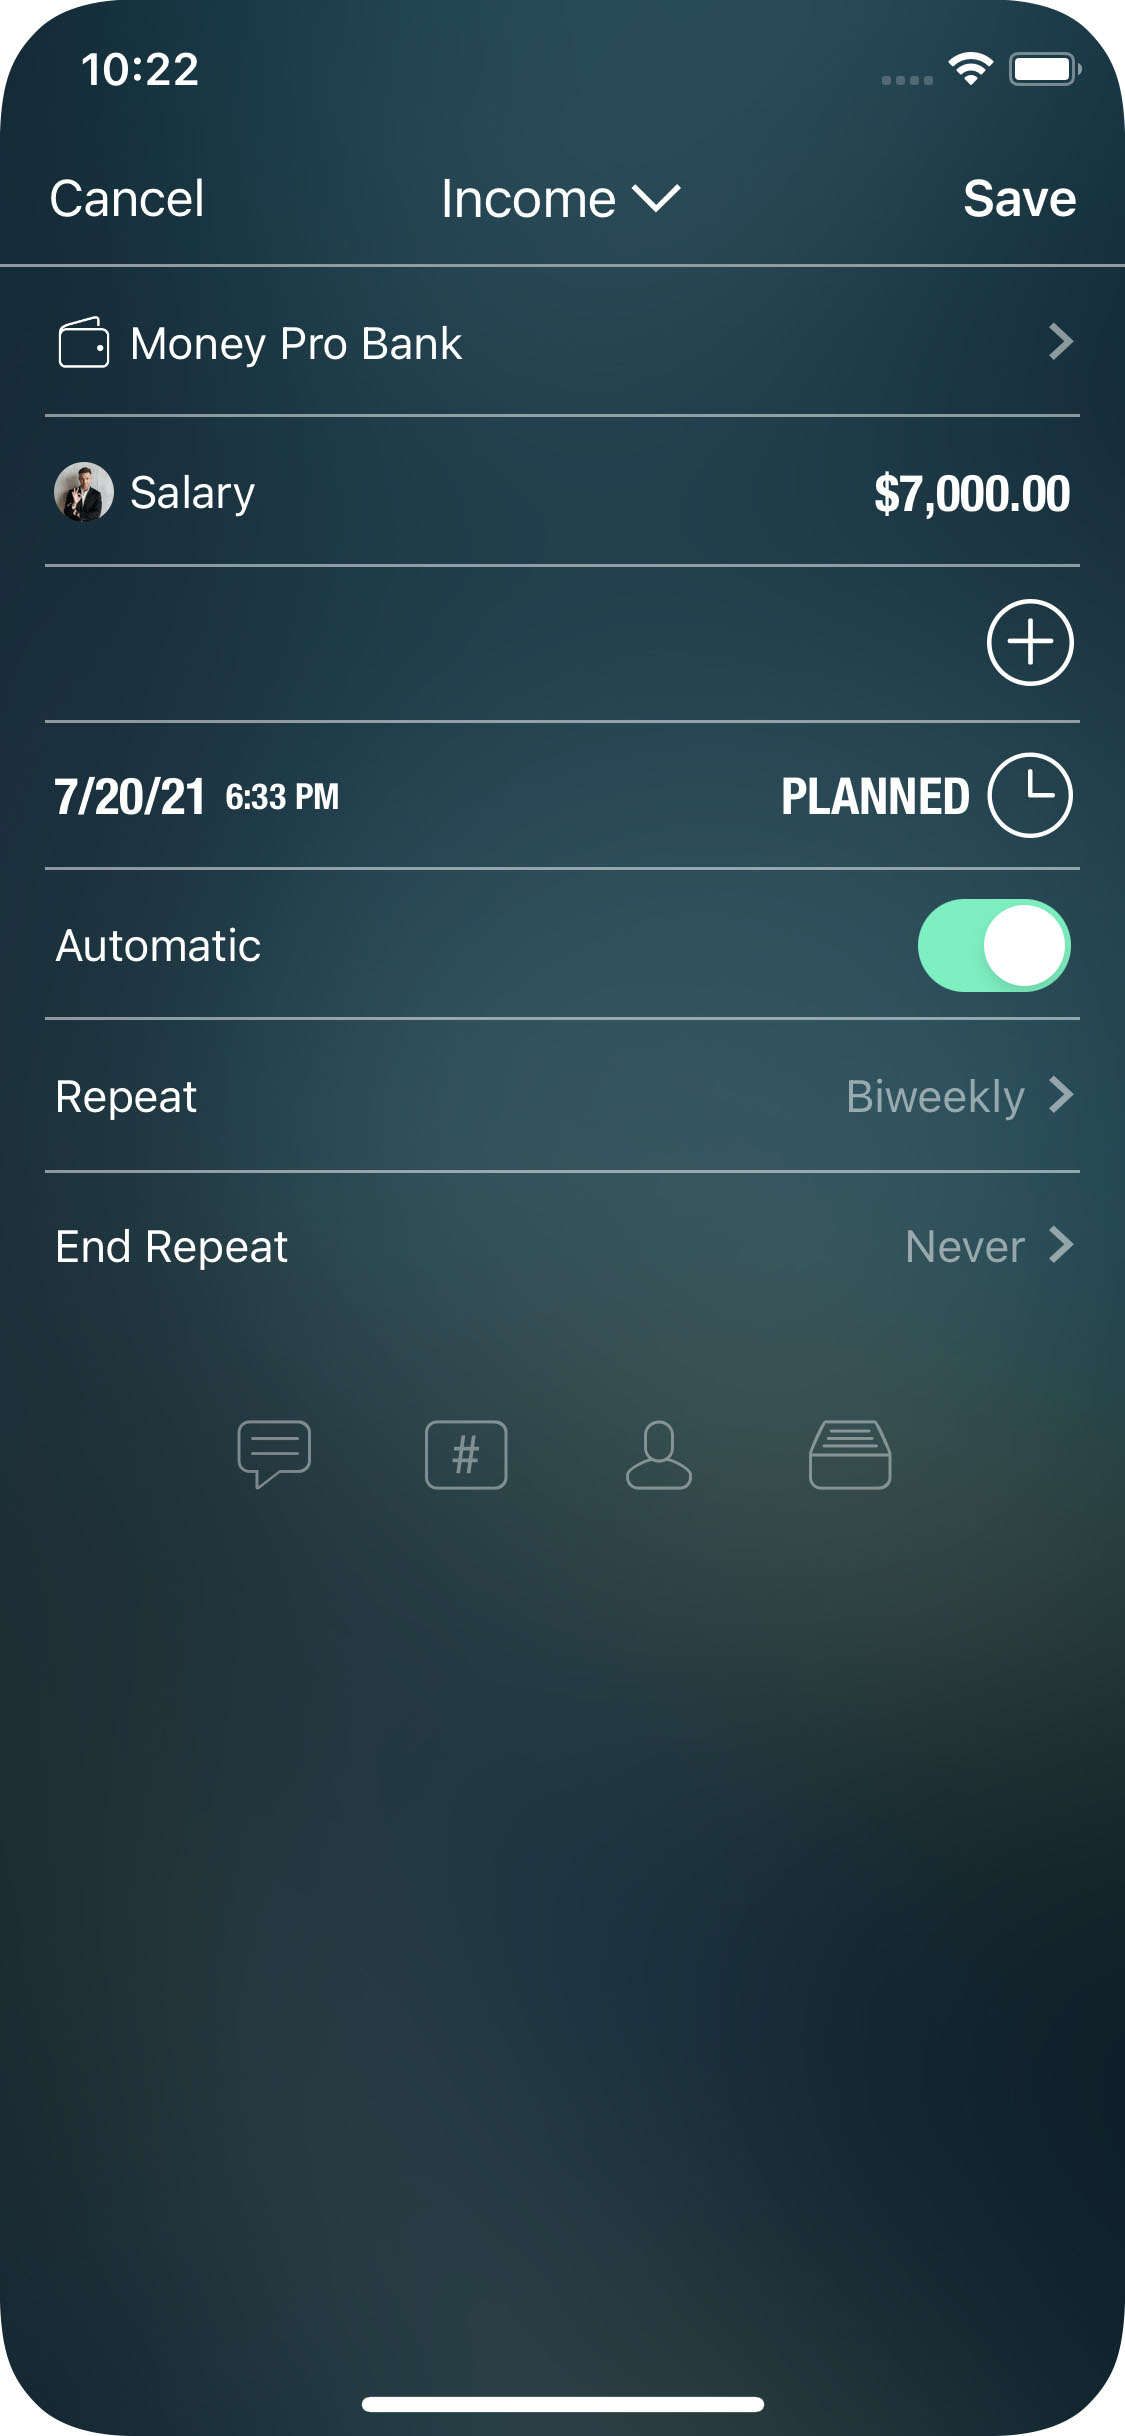 Money Pro - Planned and recurring bills - iPhone